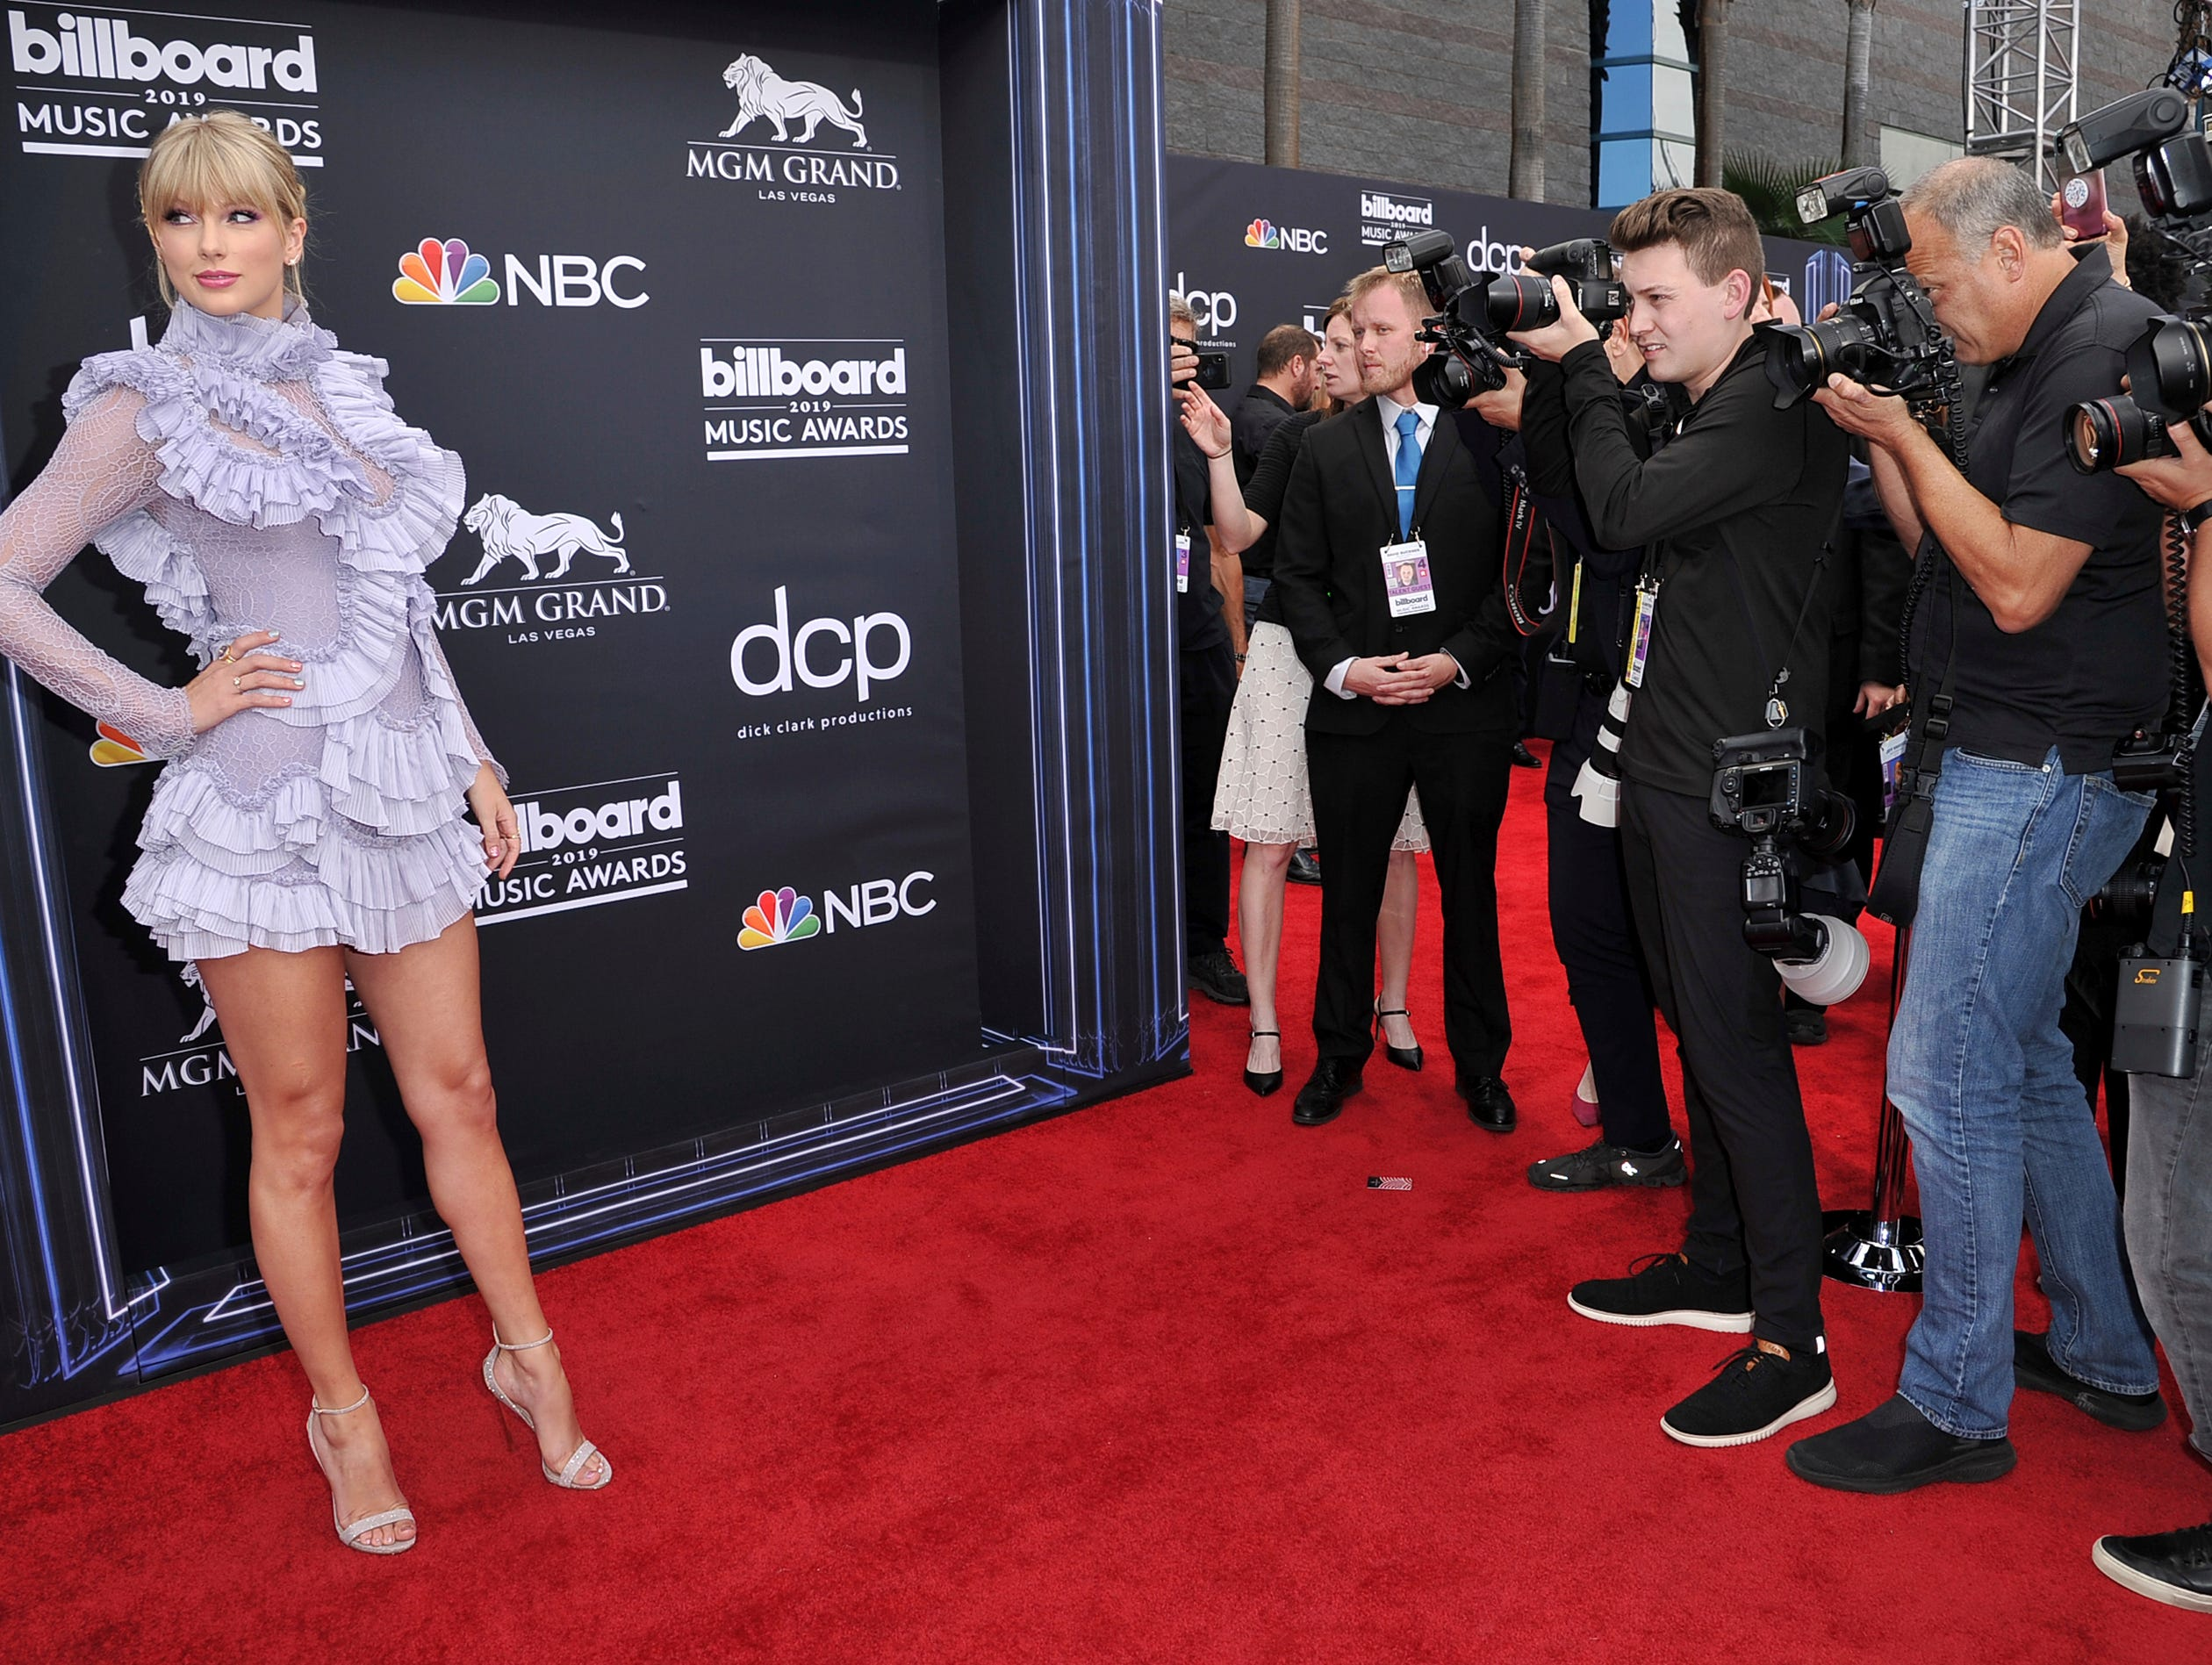 Taylor Swift arrives at the Billboard Music Awards on Wednesday, May 1, 2019, at the MGM Grand Garden Arena in Las Vegas.